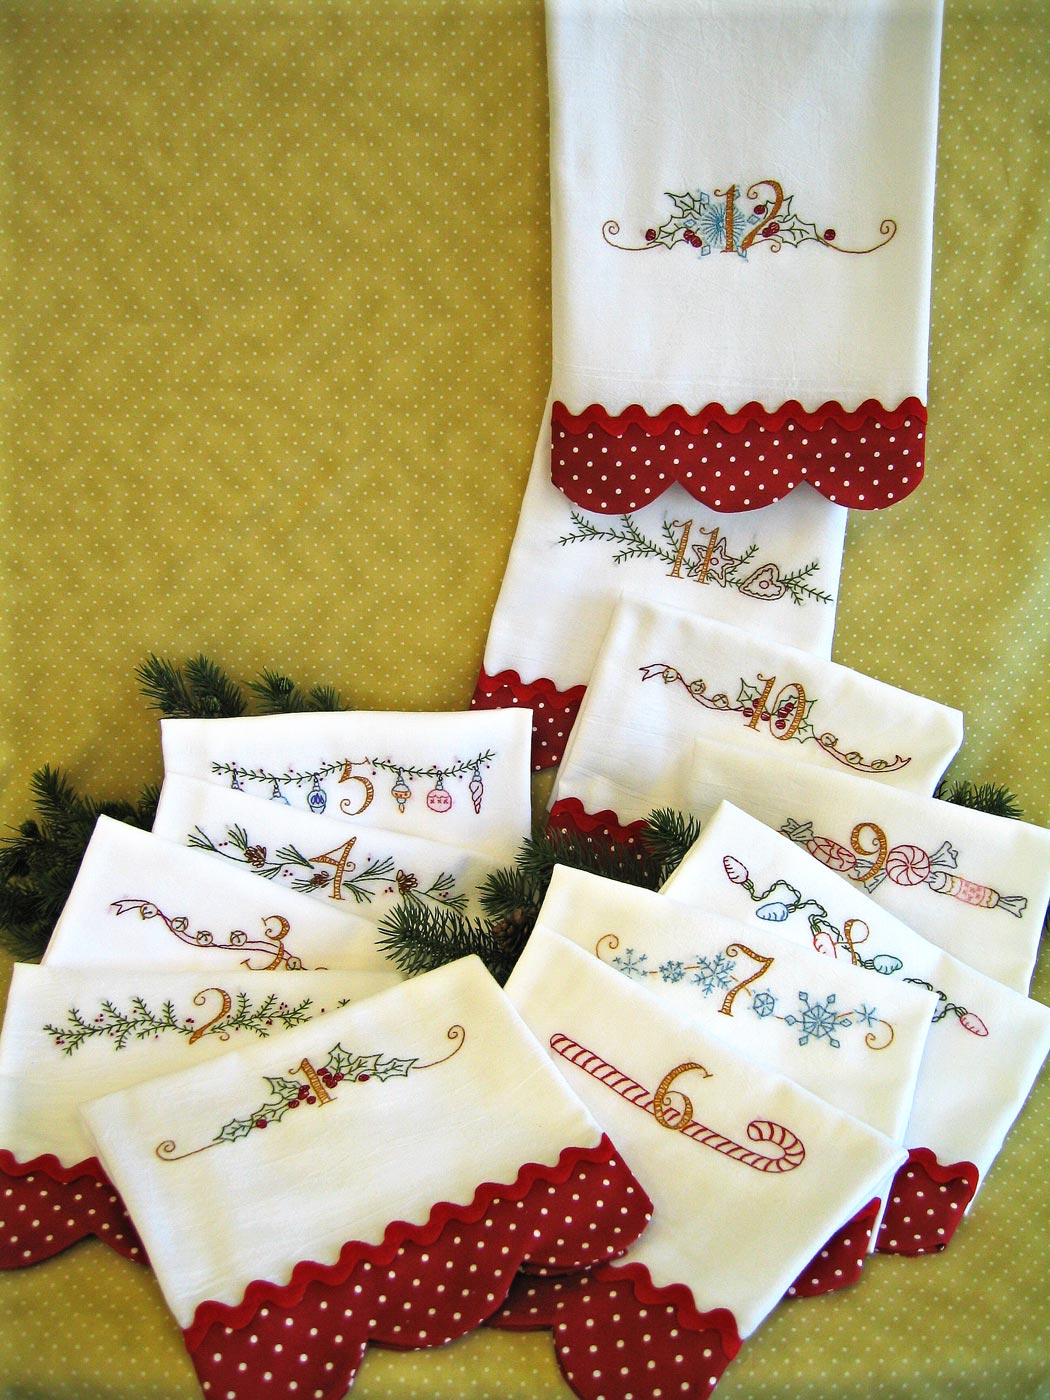 Embroidery Patterns Christmas Hand Embroidery Pattern 12 Days Of Christmas